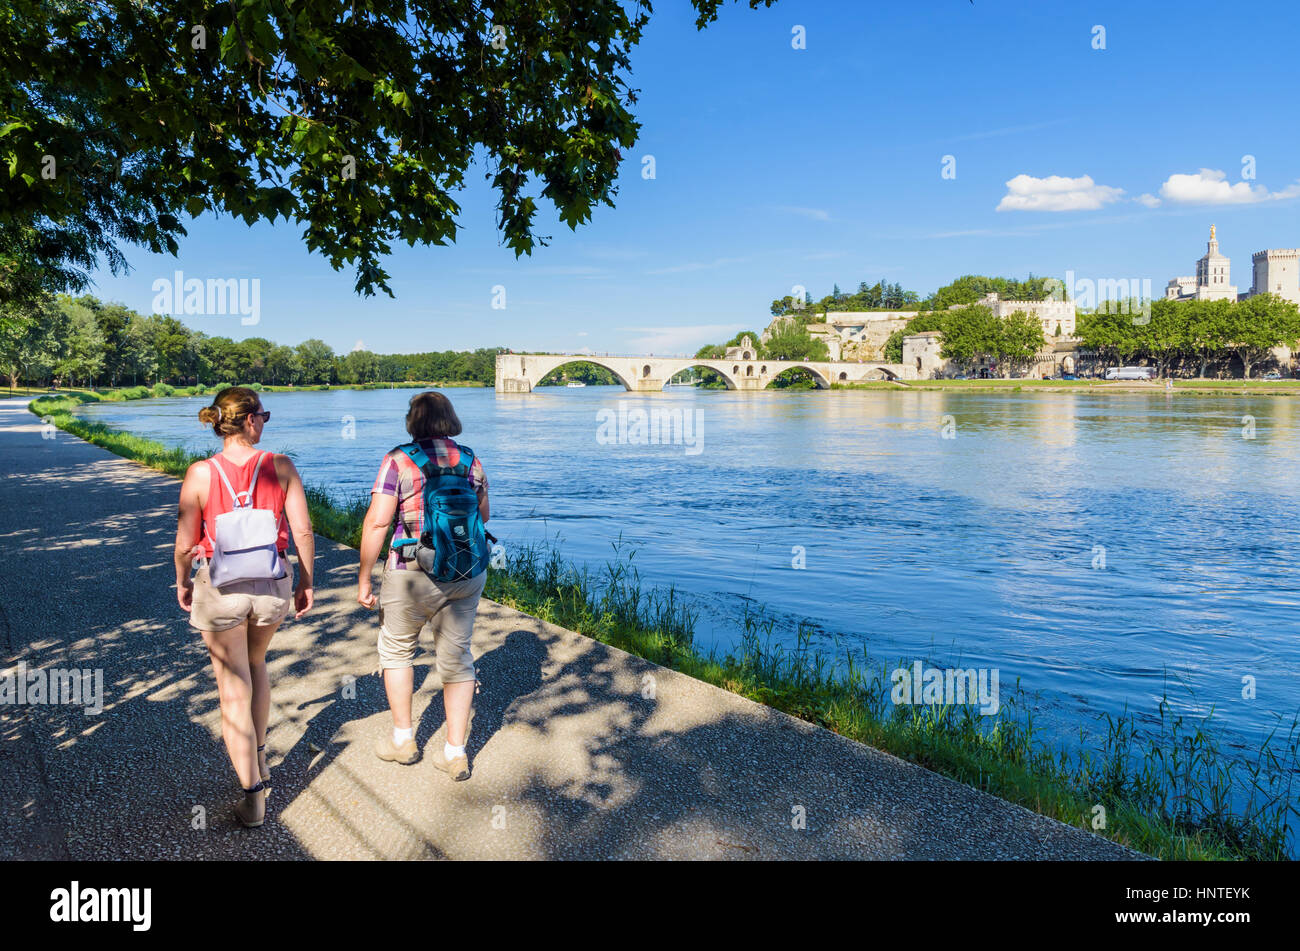 Avignon tourists walking along the Rhone River looking towards the Pont Saint-Bénézet bridge, Avignon, - Stock Image